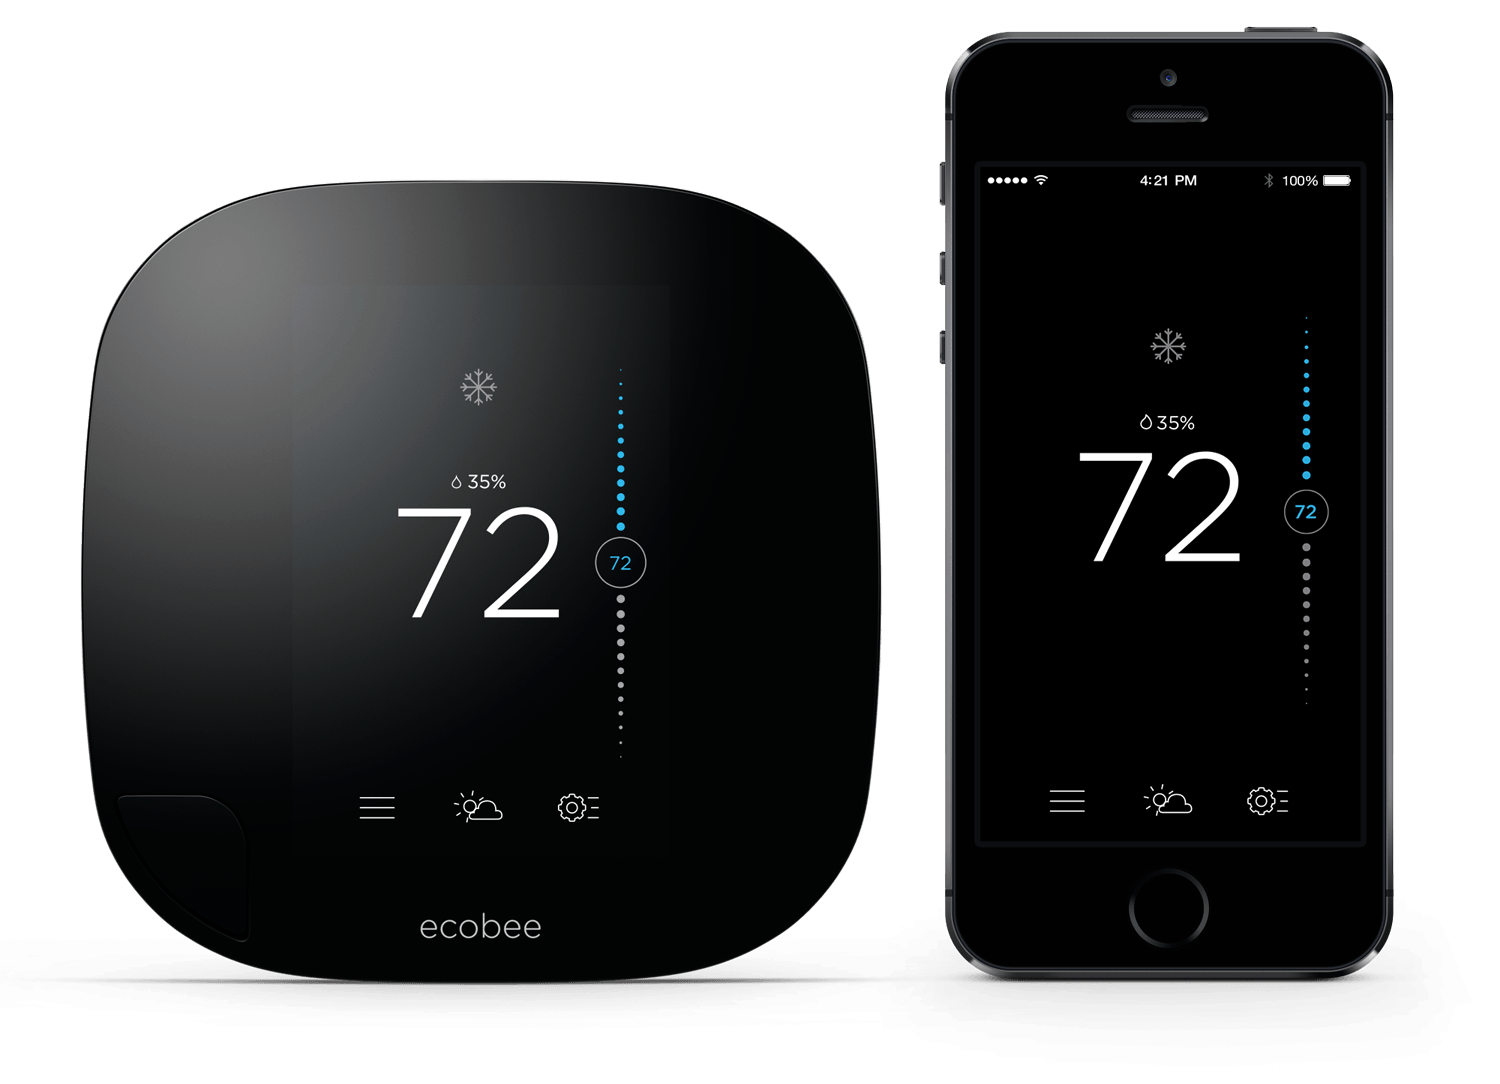 Figure 1: Ecobee interfaces maintain a consistent look and feel across screens